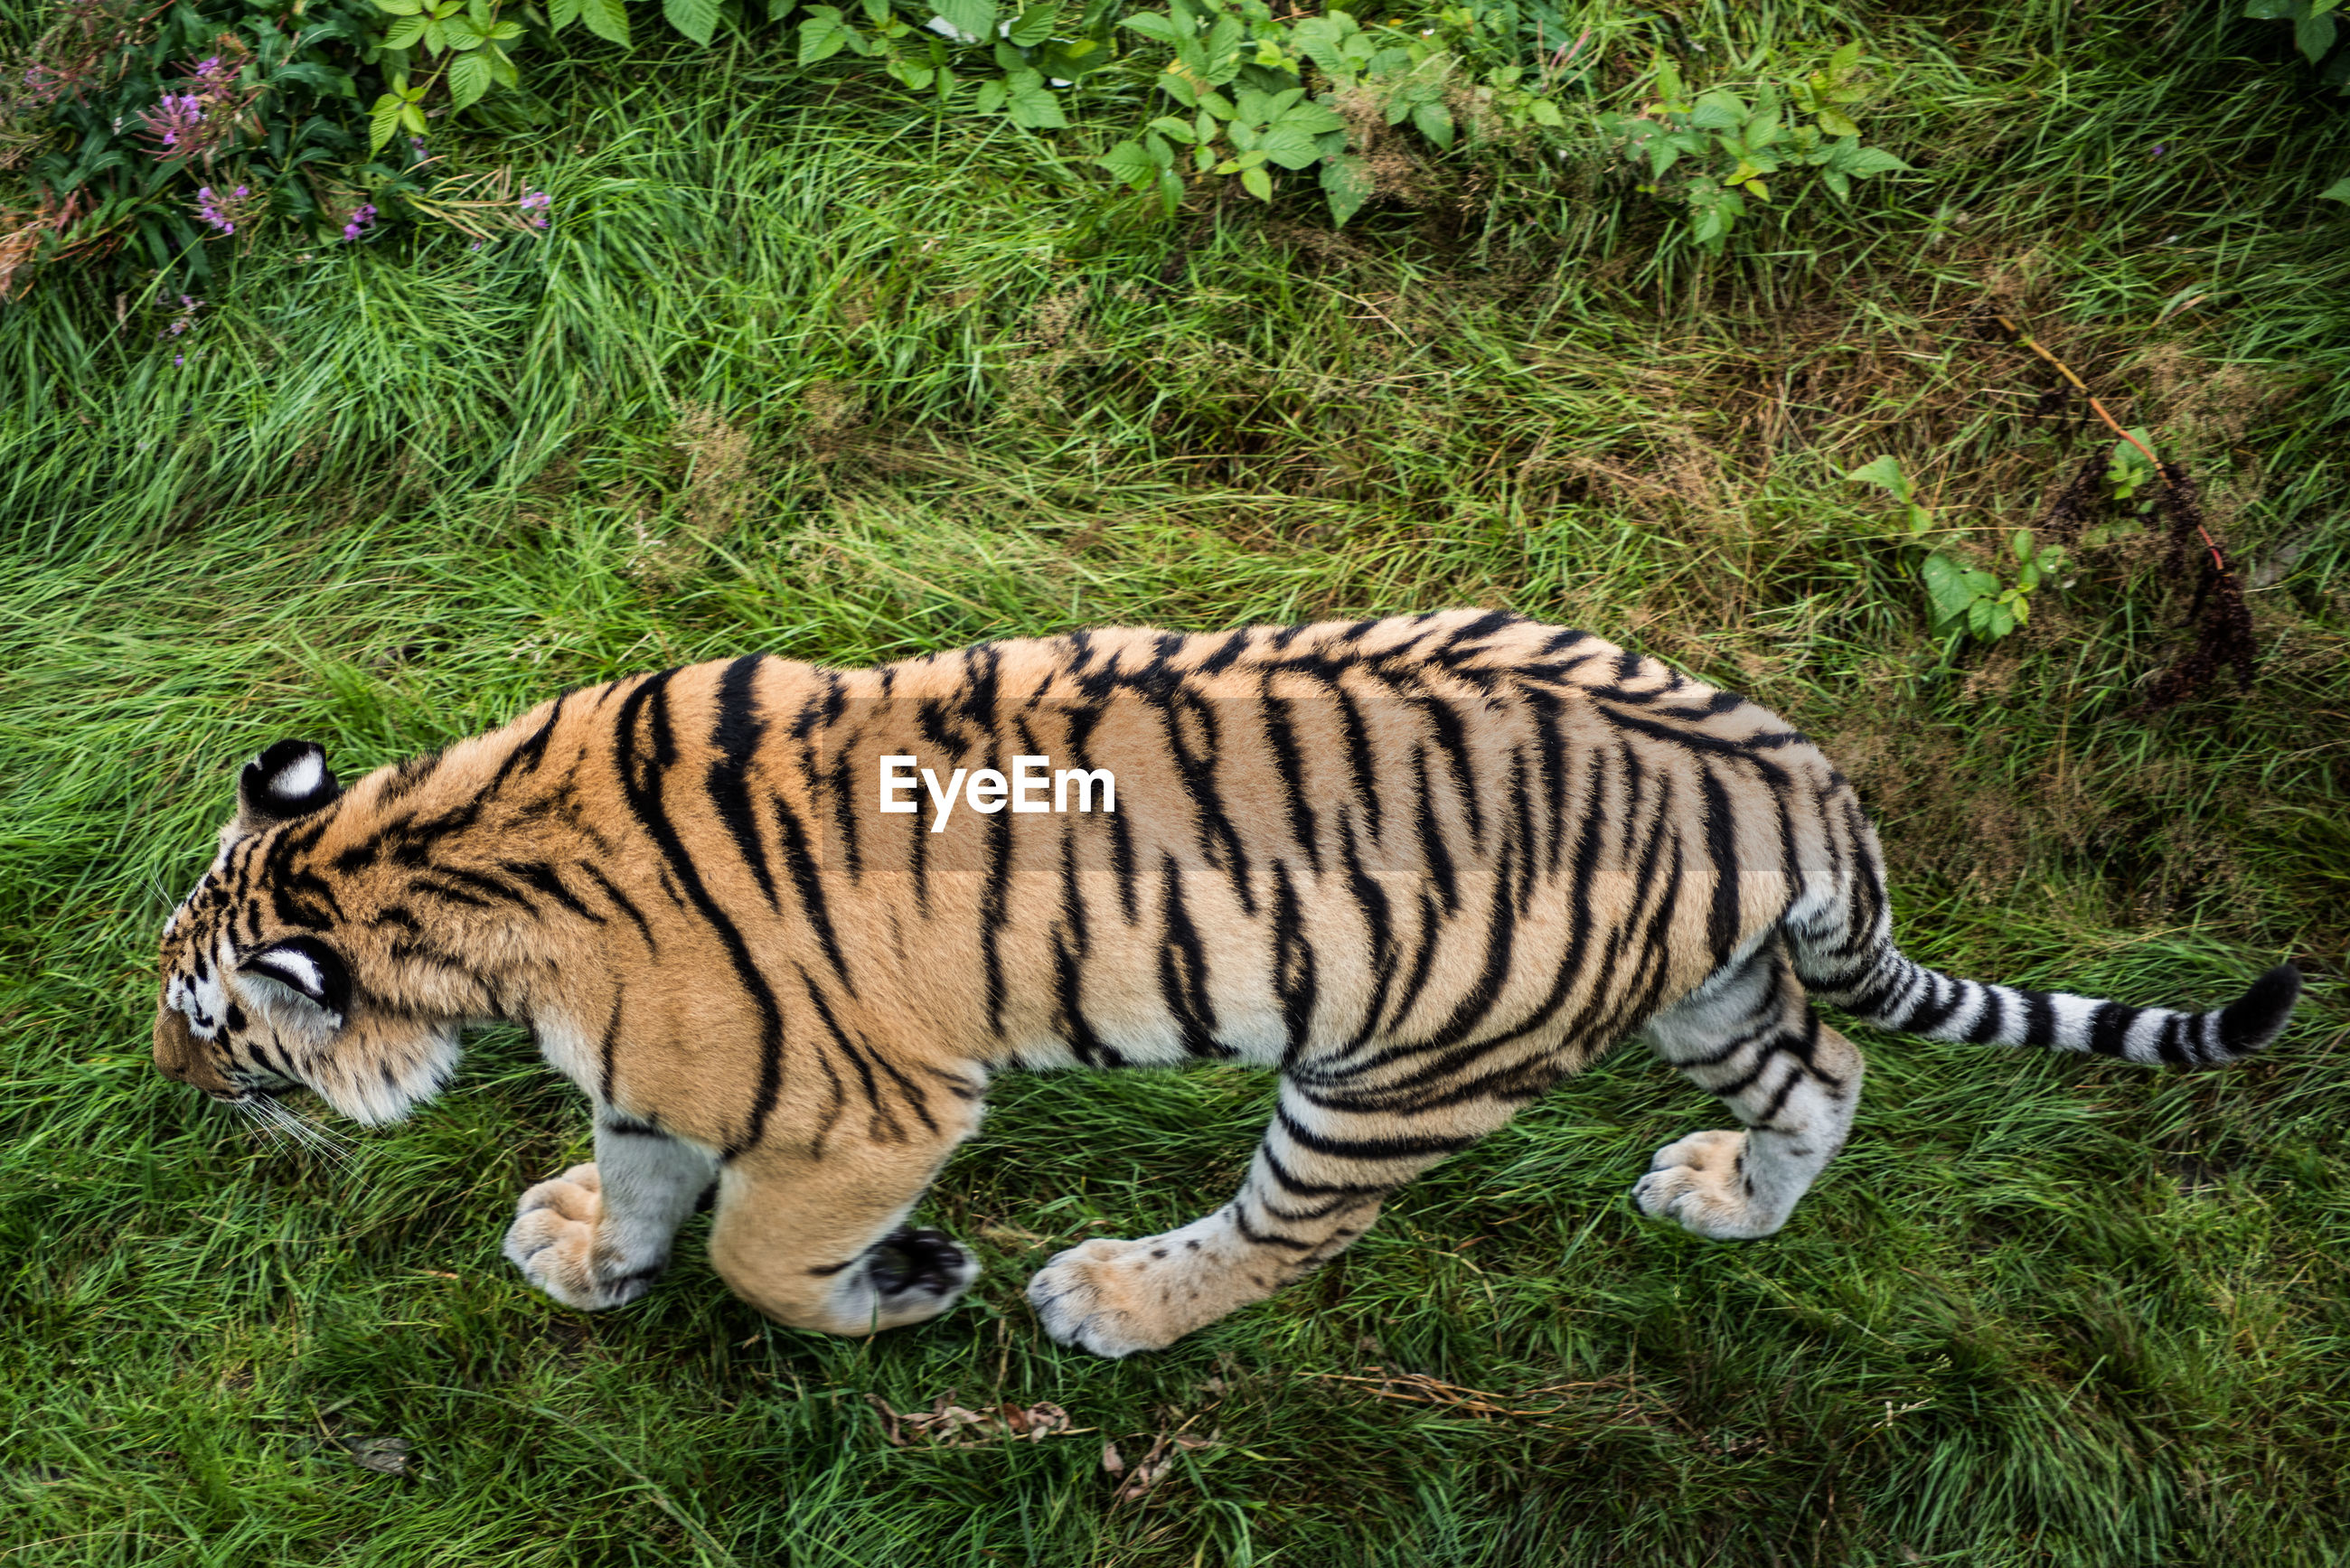 High angle view of tiger walking on grassy field